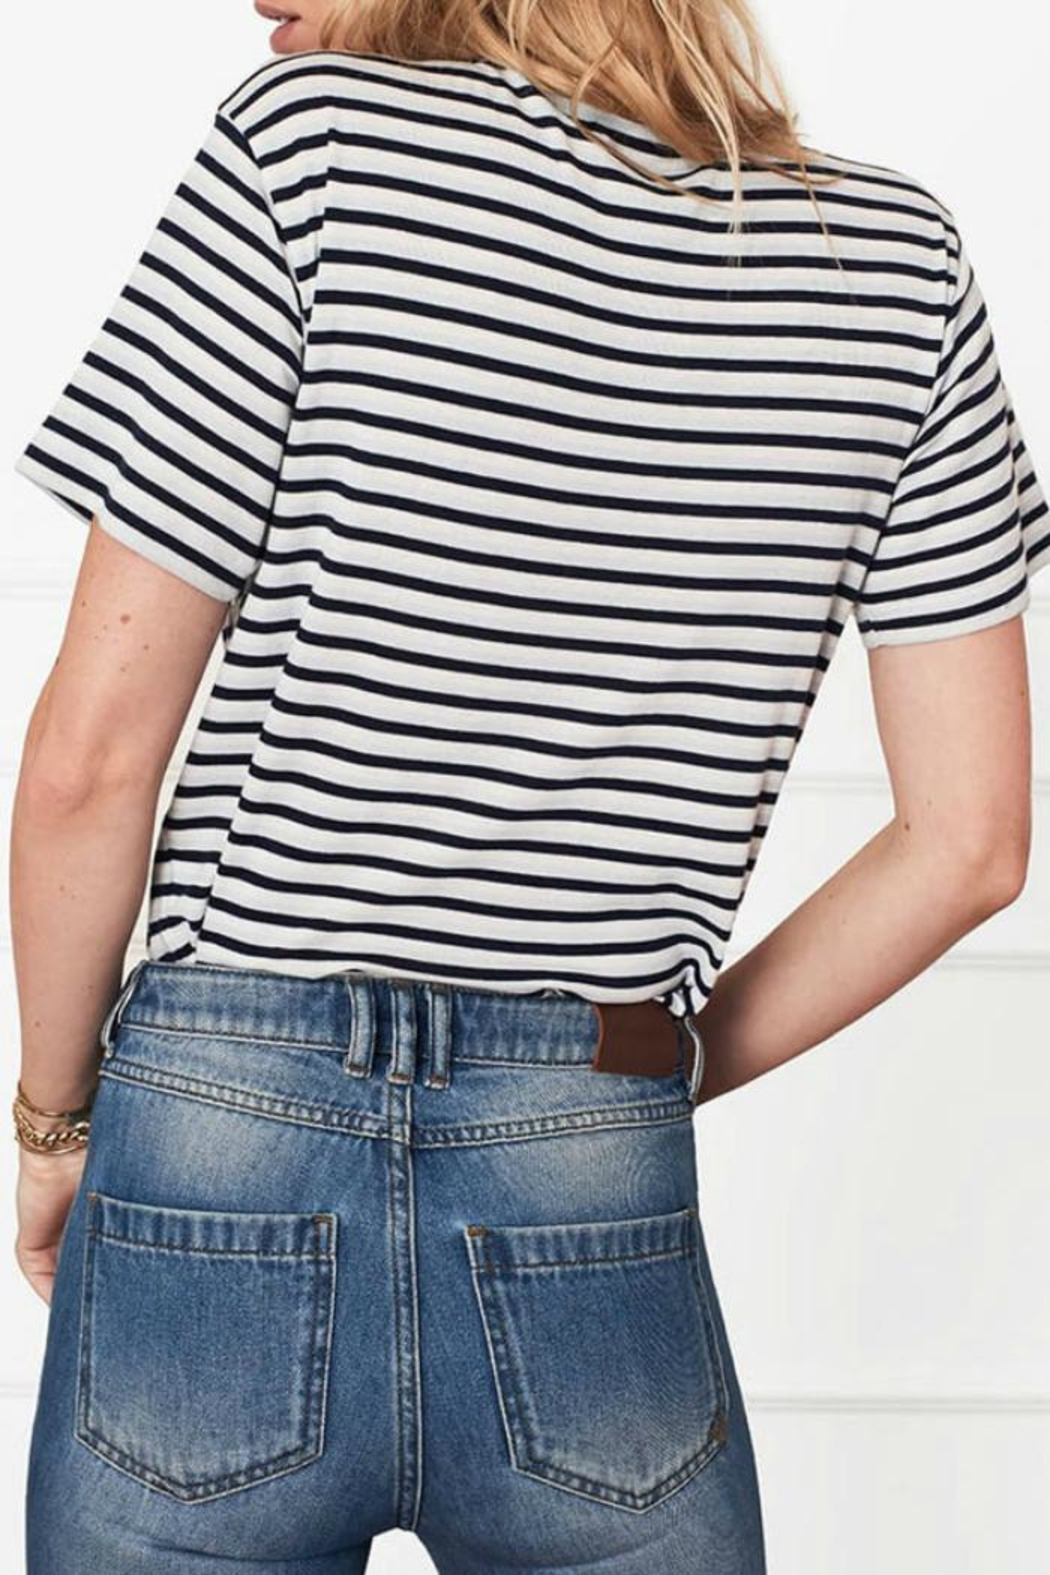 Anine Bing Striped Tee - Side Cropped Image